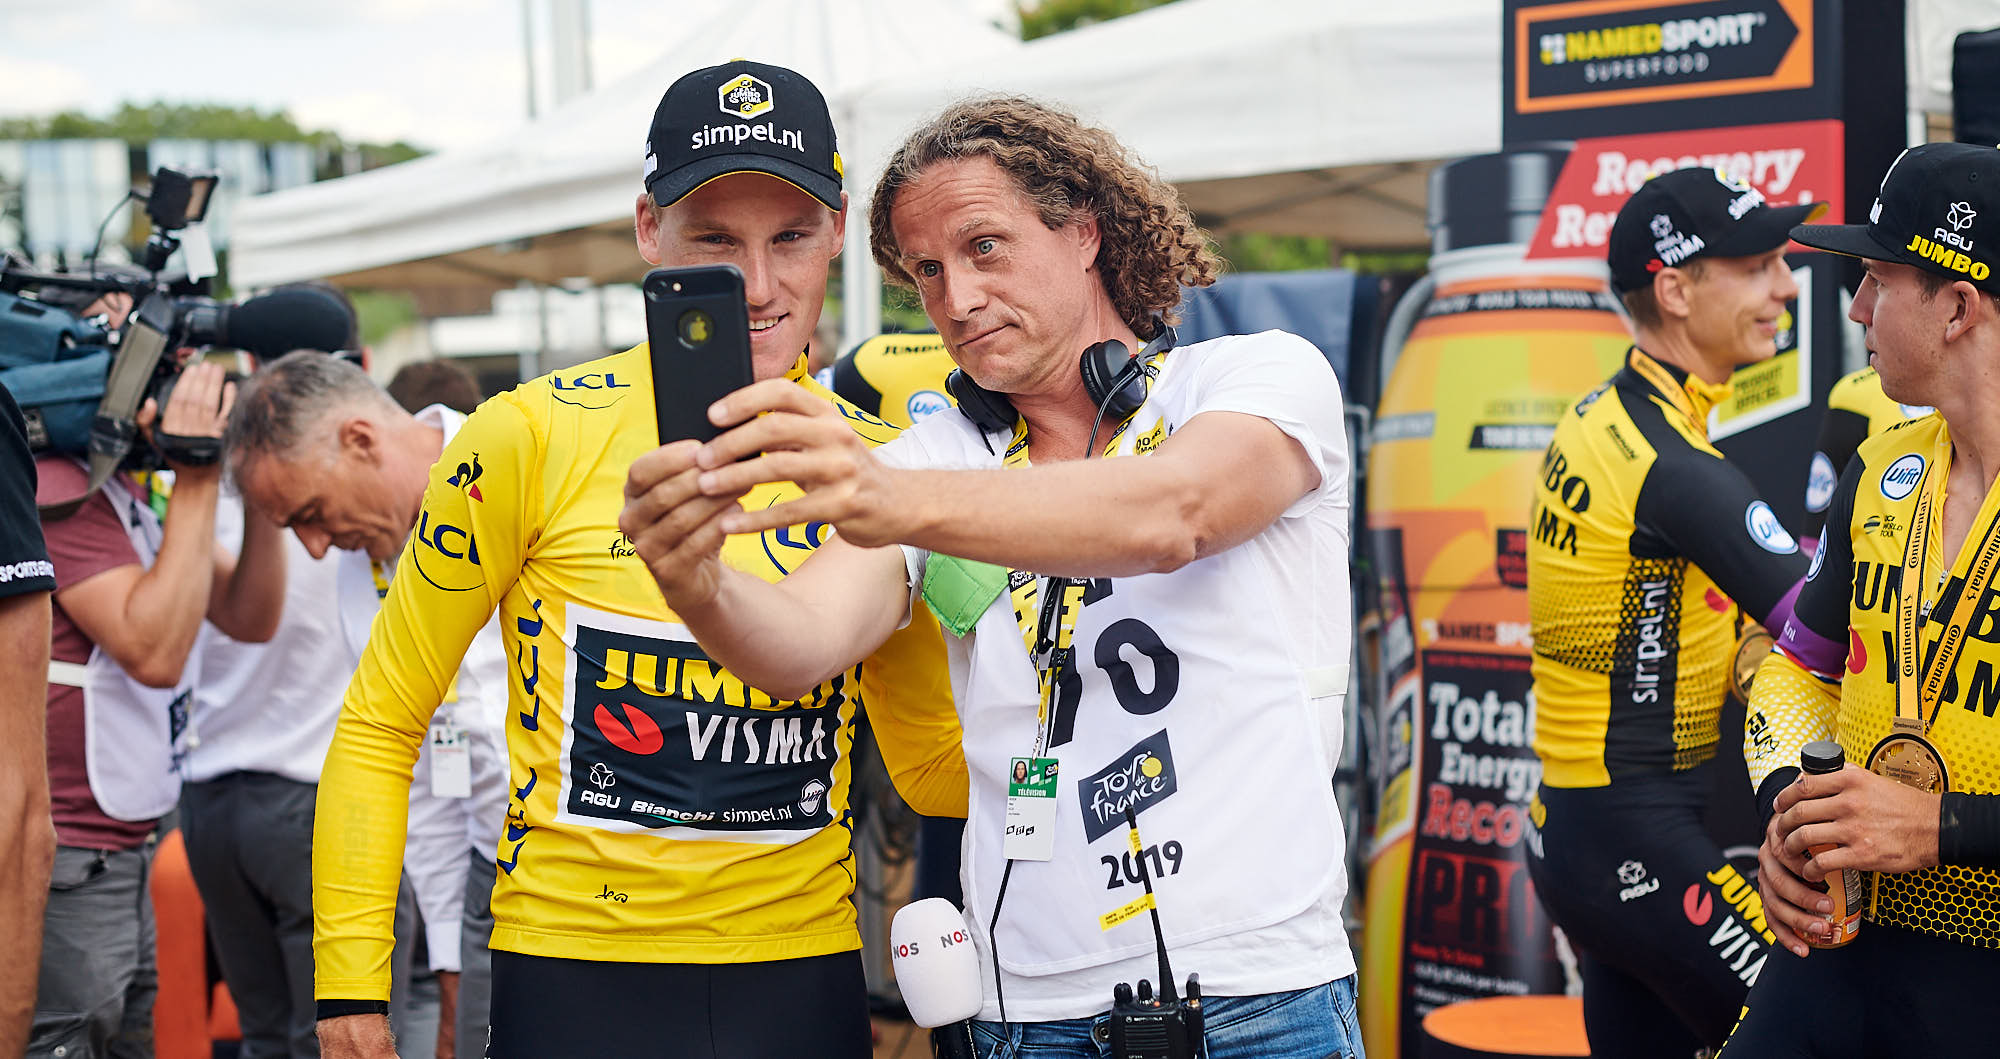 Jumbo-Visma rider Mike Teunissen and Han Kok in Brussels during the 2019 Tour de France